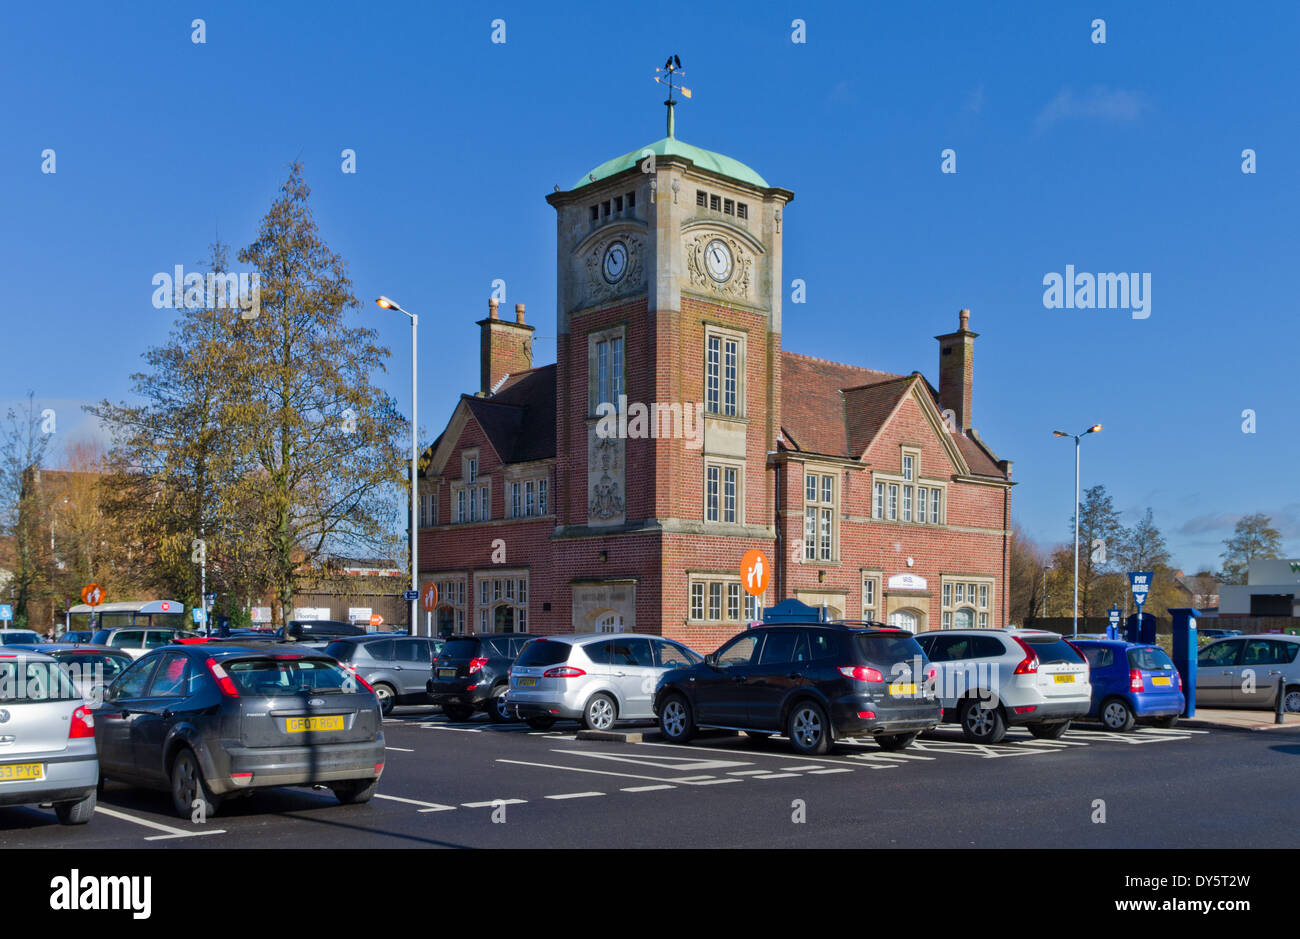 The former cattle market in Market Harborough, now a car park, with the old Settling Rooms in the background - Stock Image